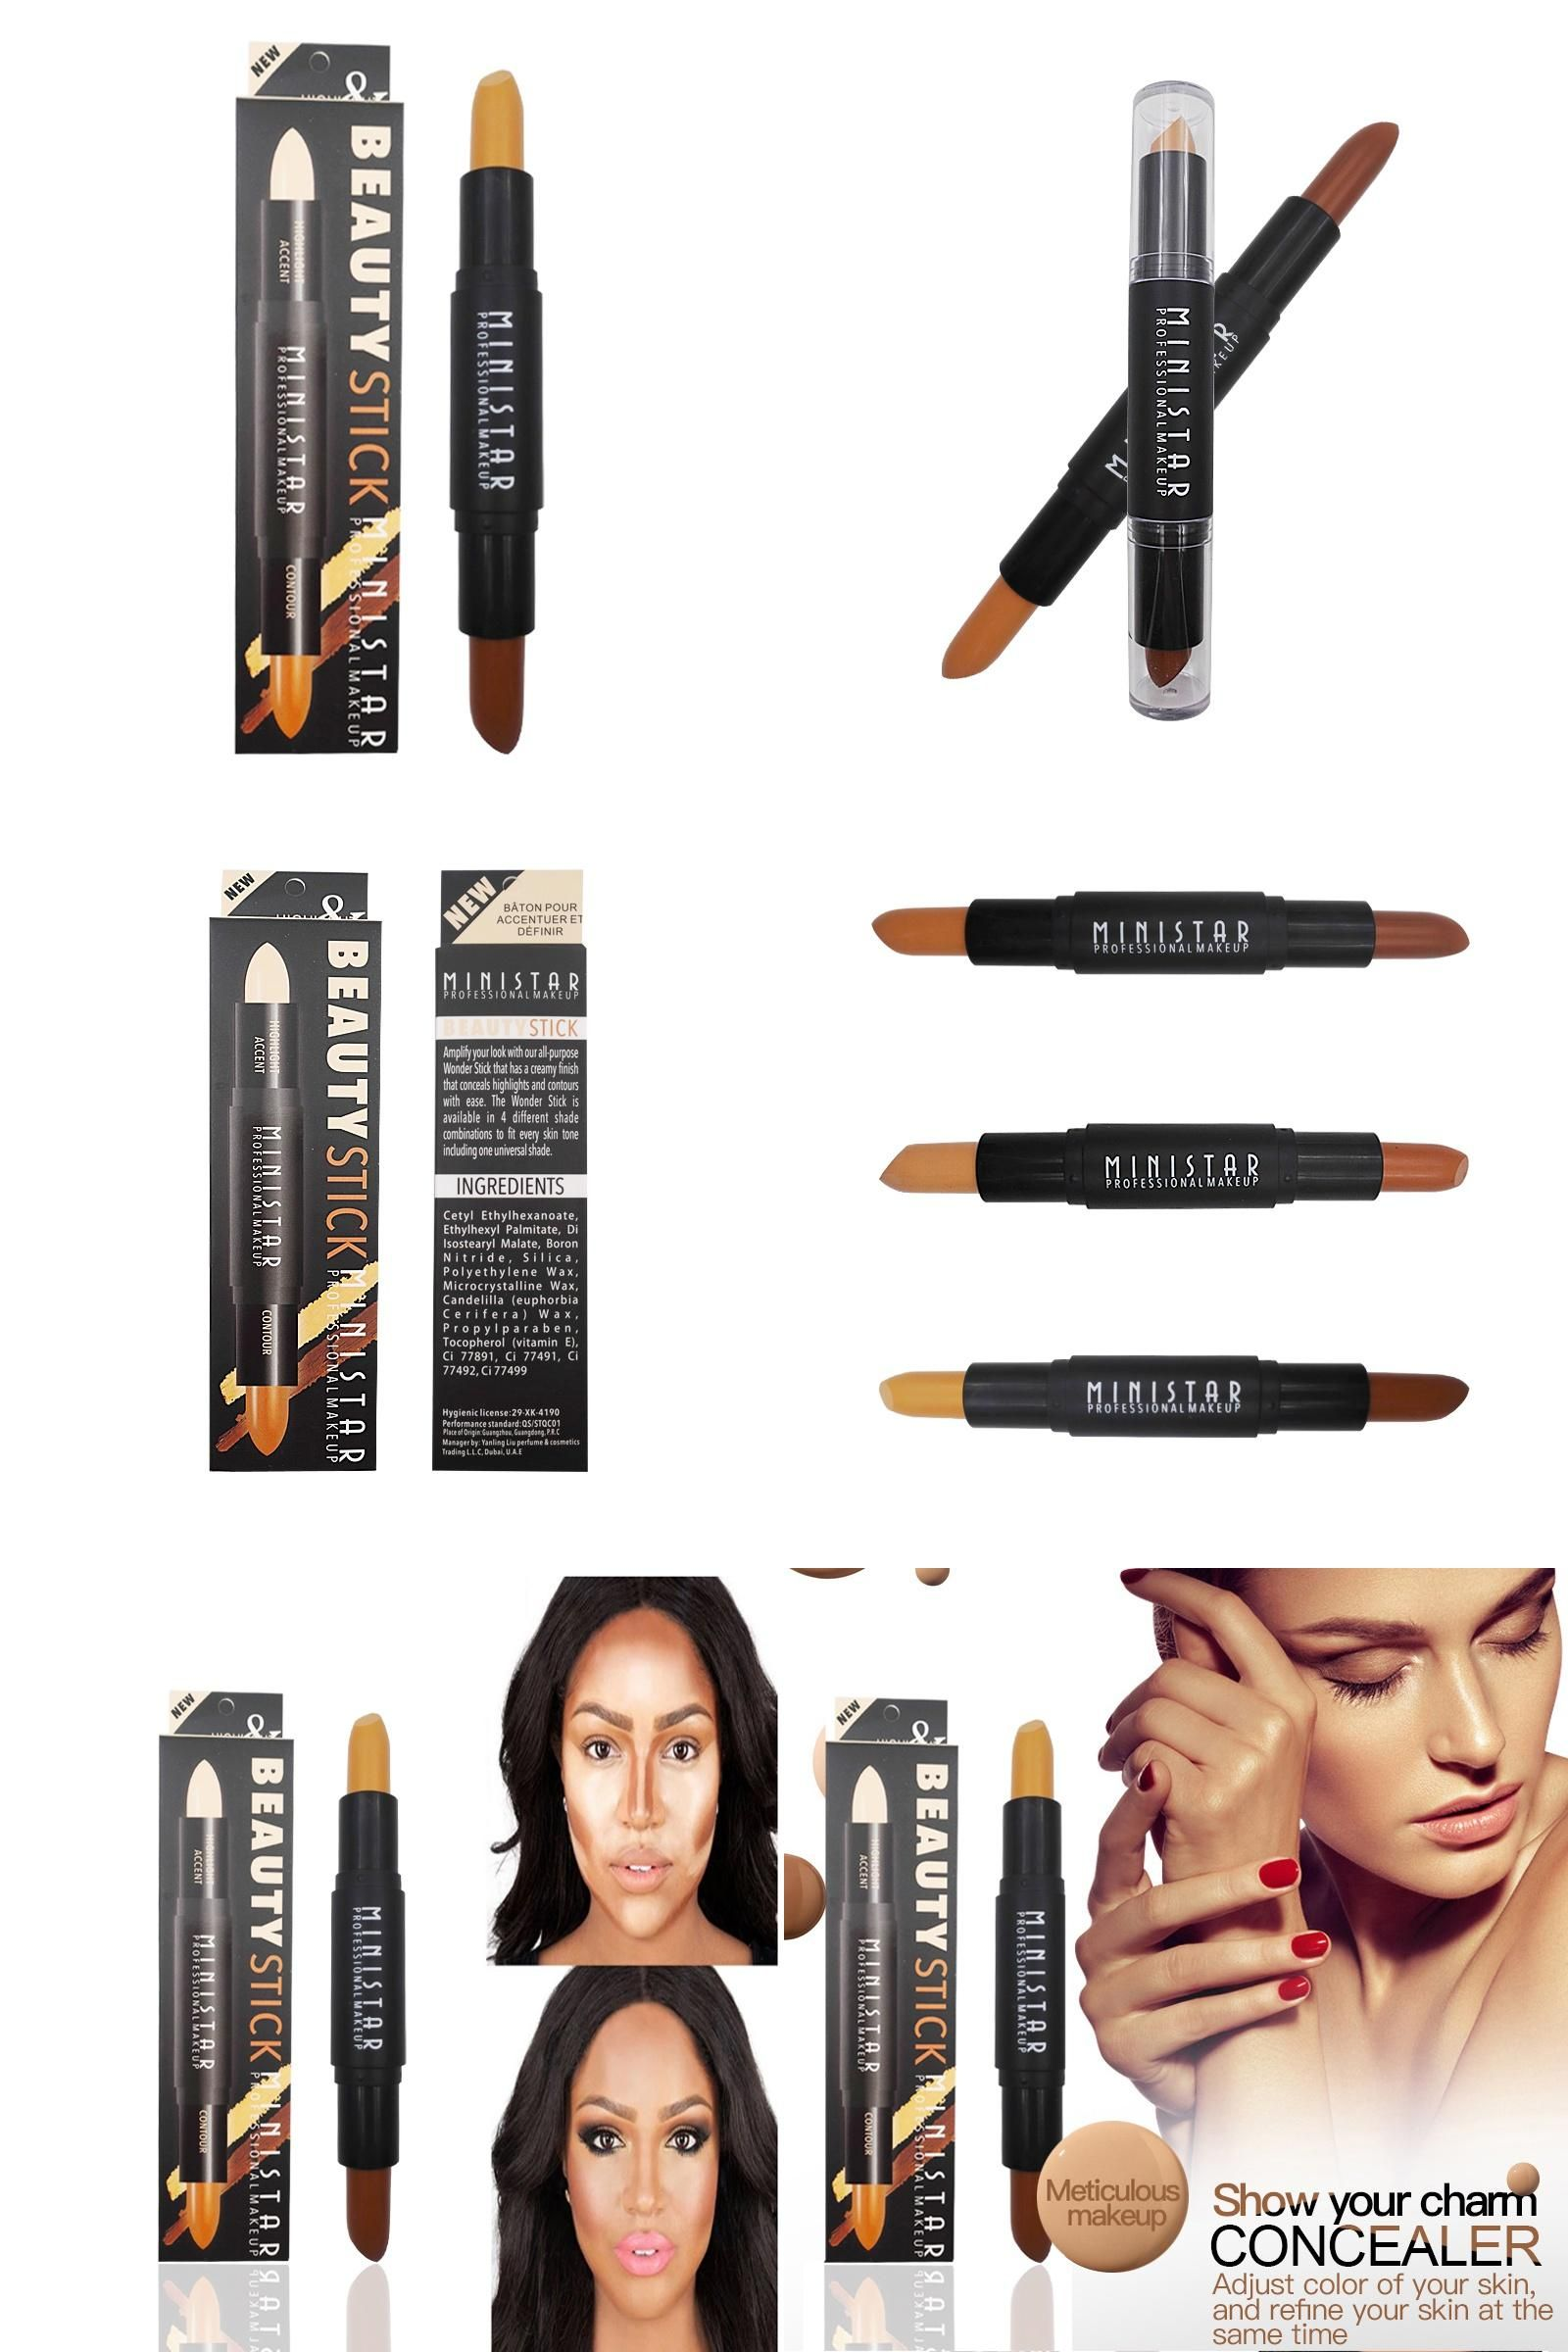 [Visit to Buy] Face Makeup Doubleended 2 in 1 Contour